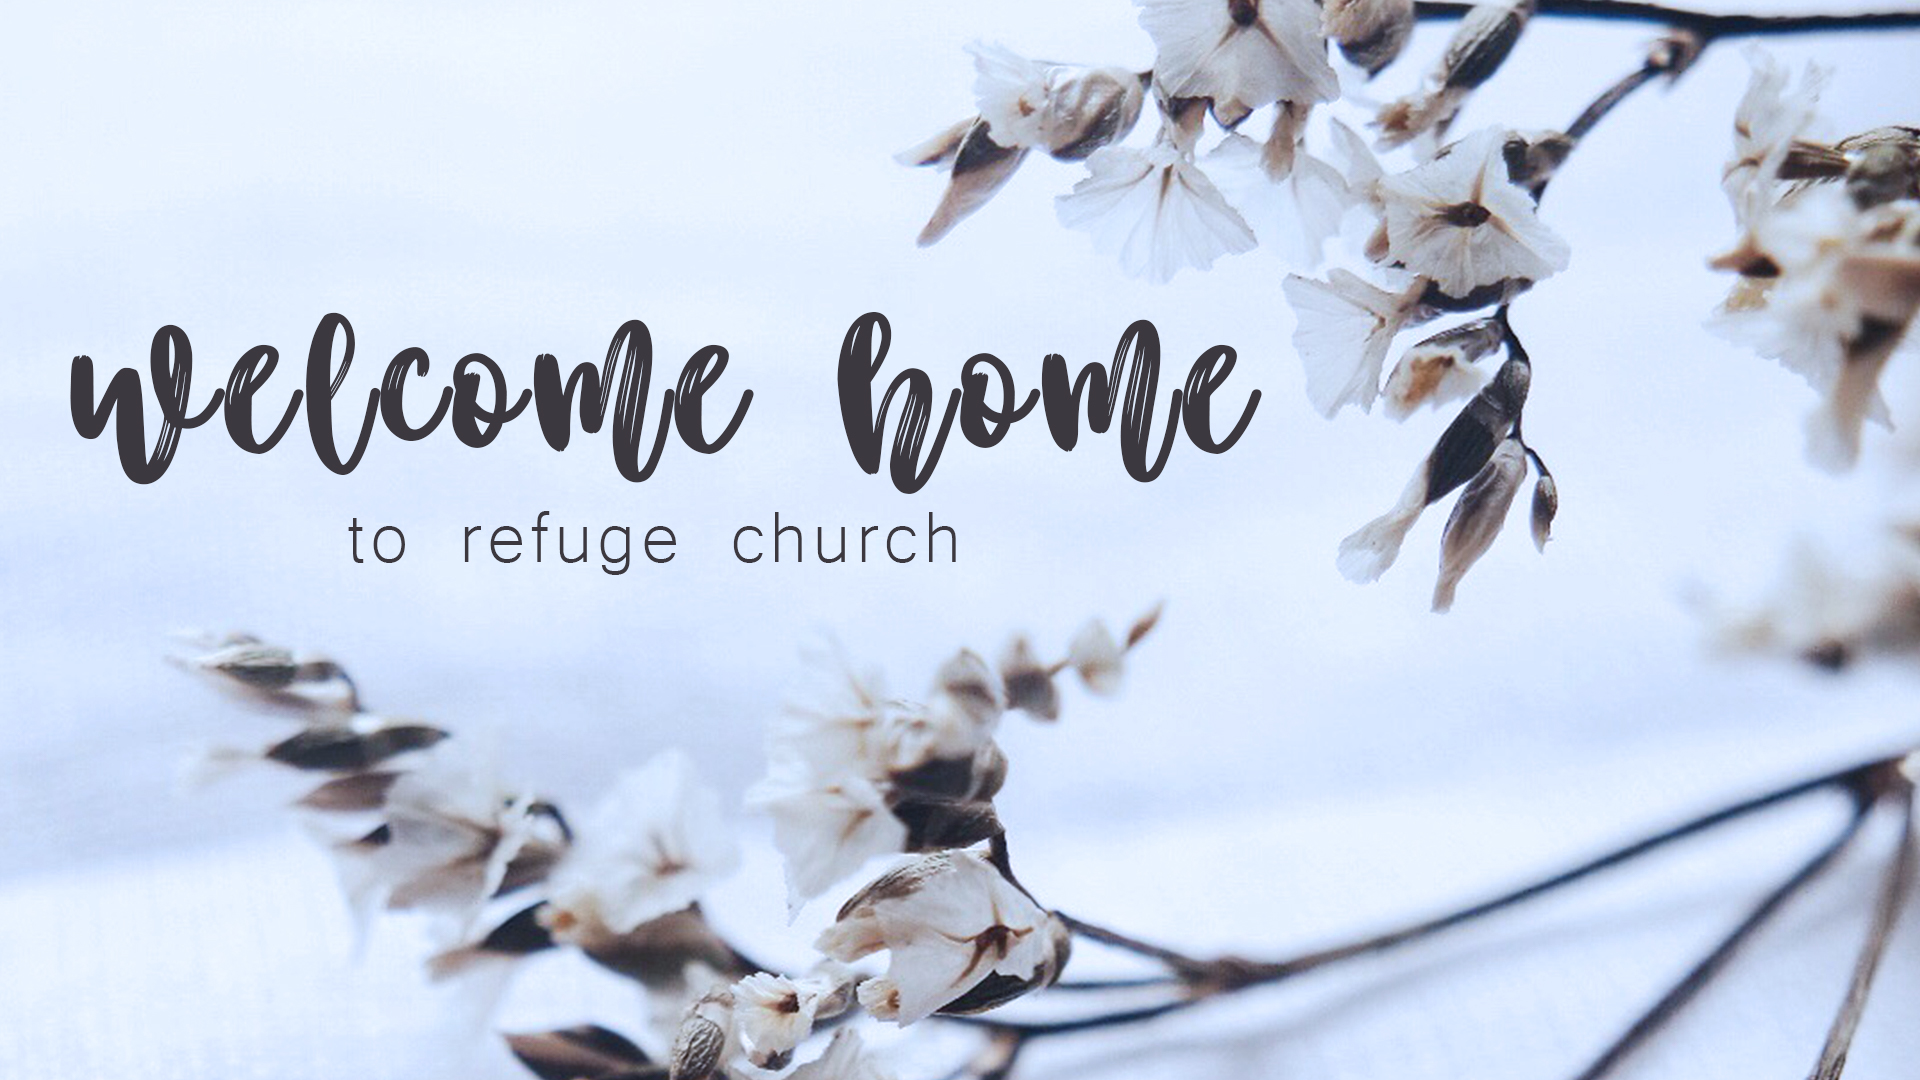 refuge-welcome-home-v2-1920x1080